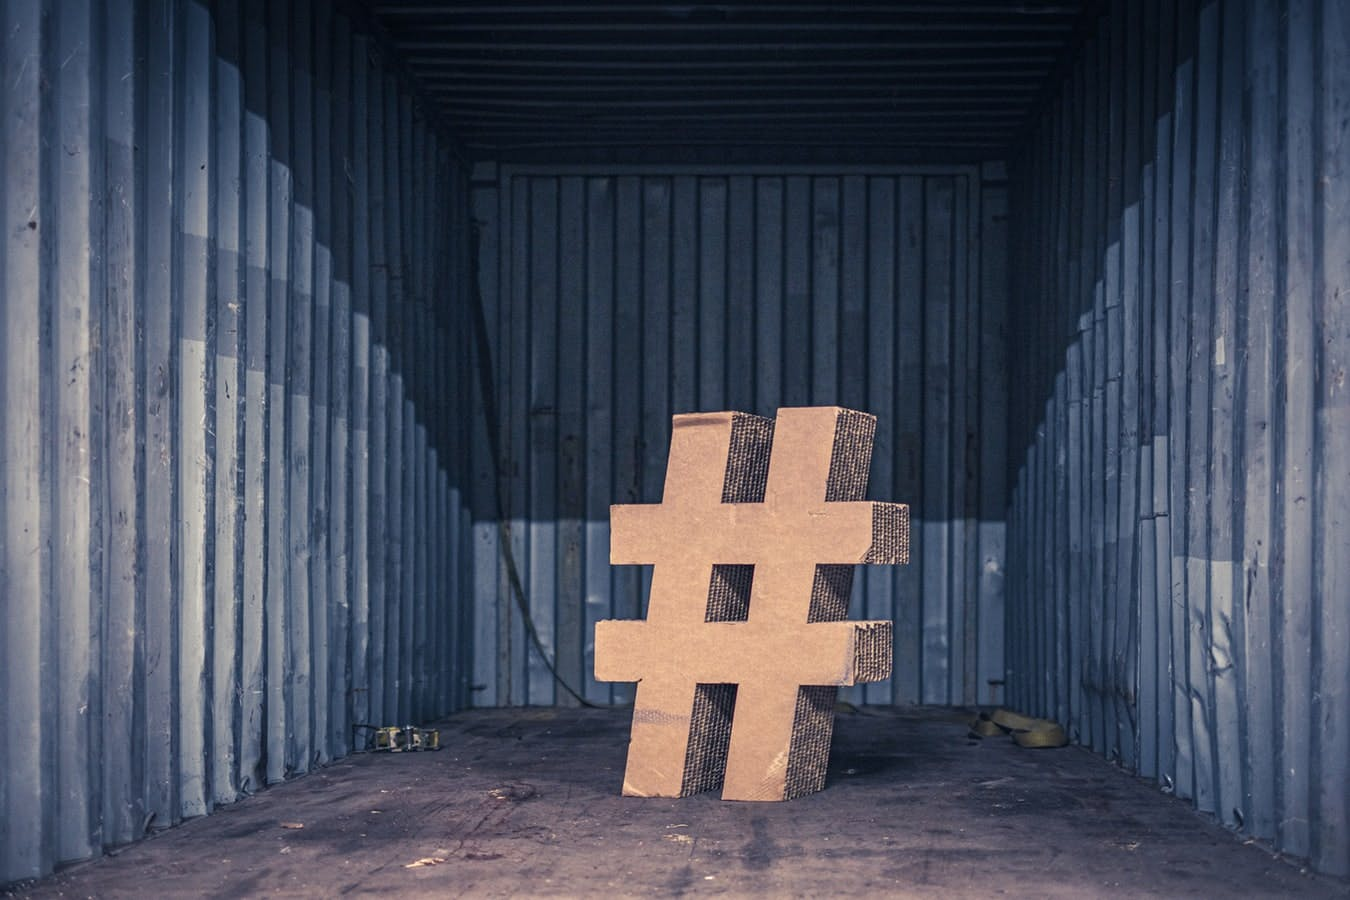 large hashtag sign in a corrugated iron room